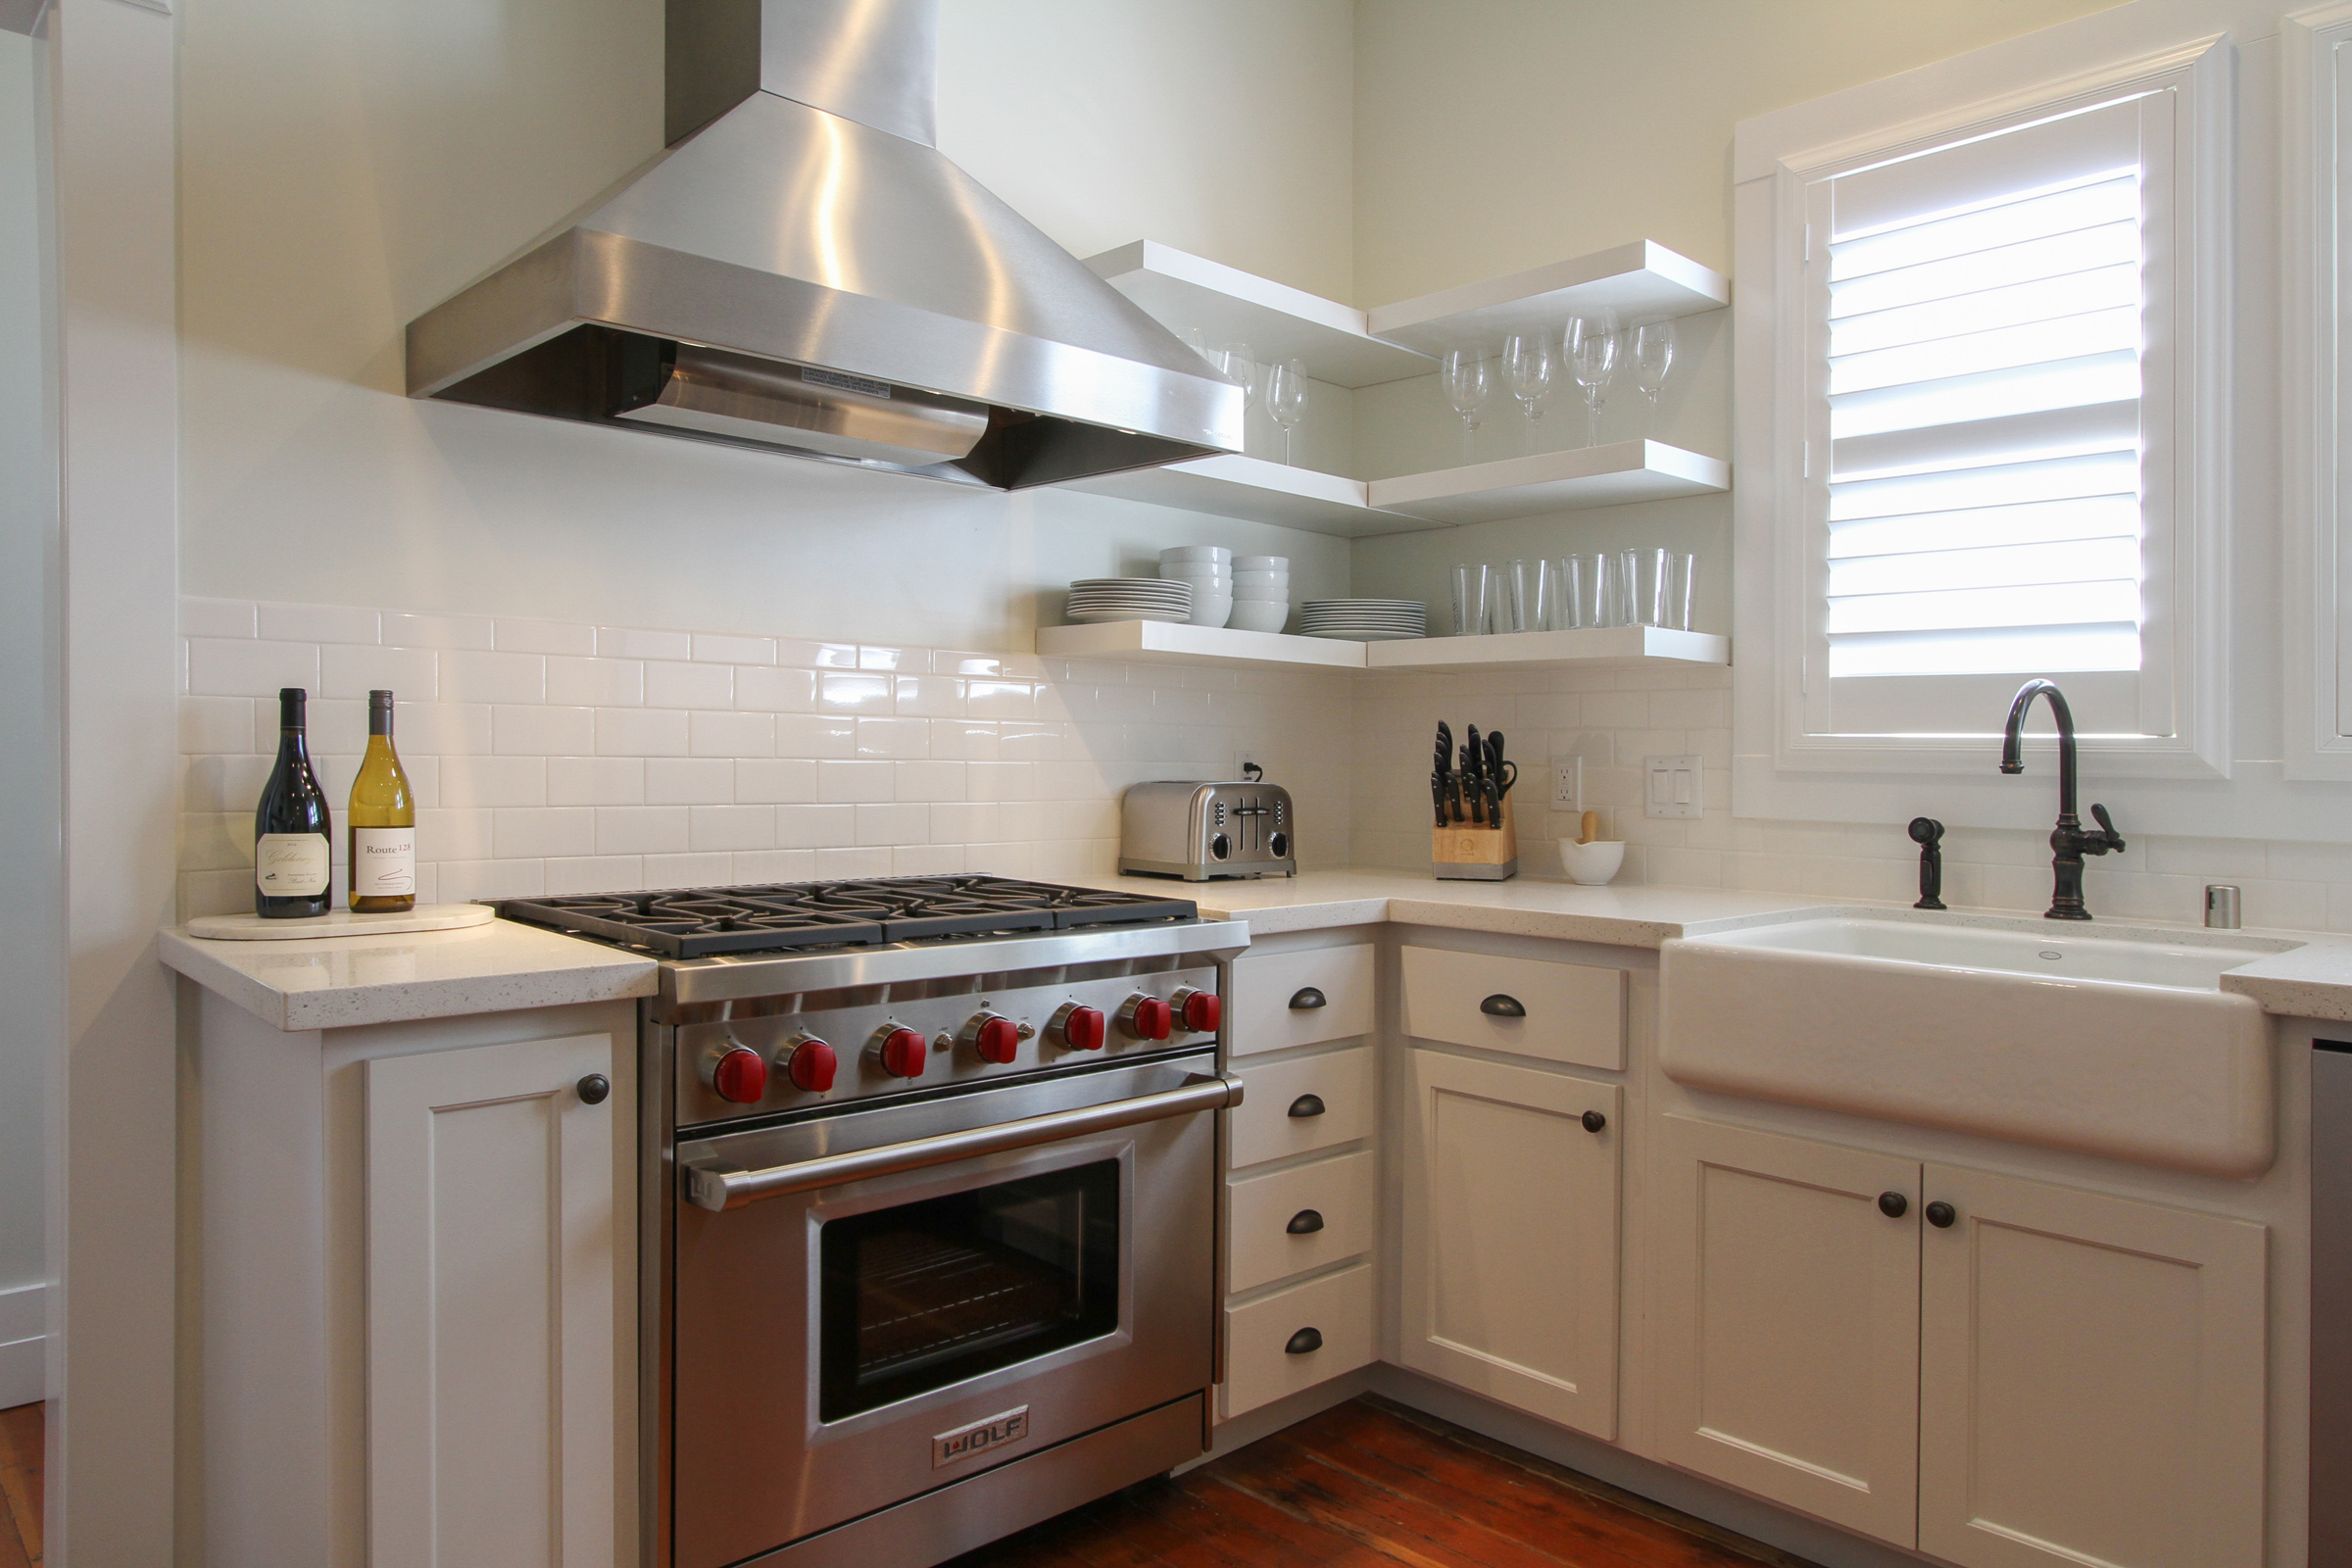 Kitchen with 6 burner Wolf stove.